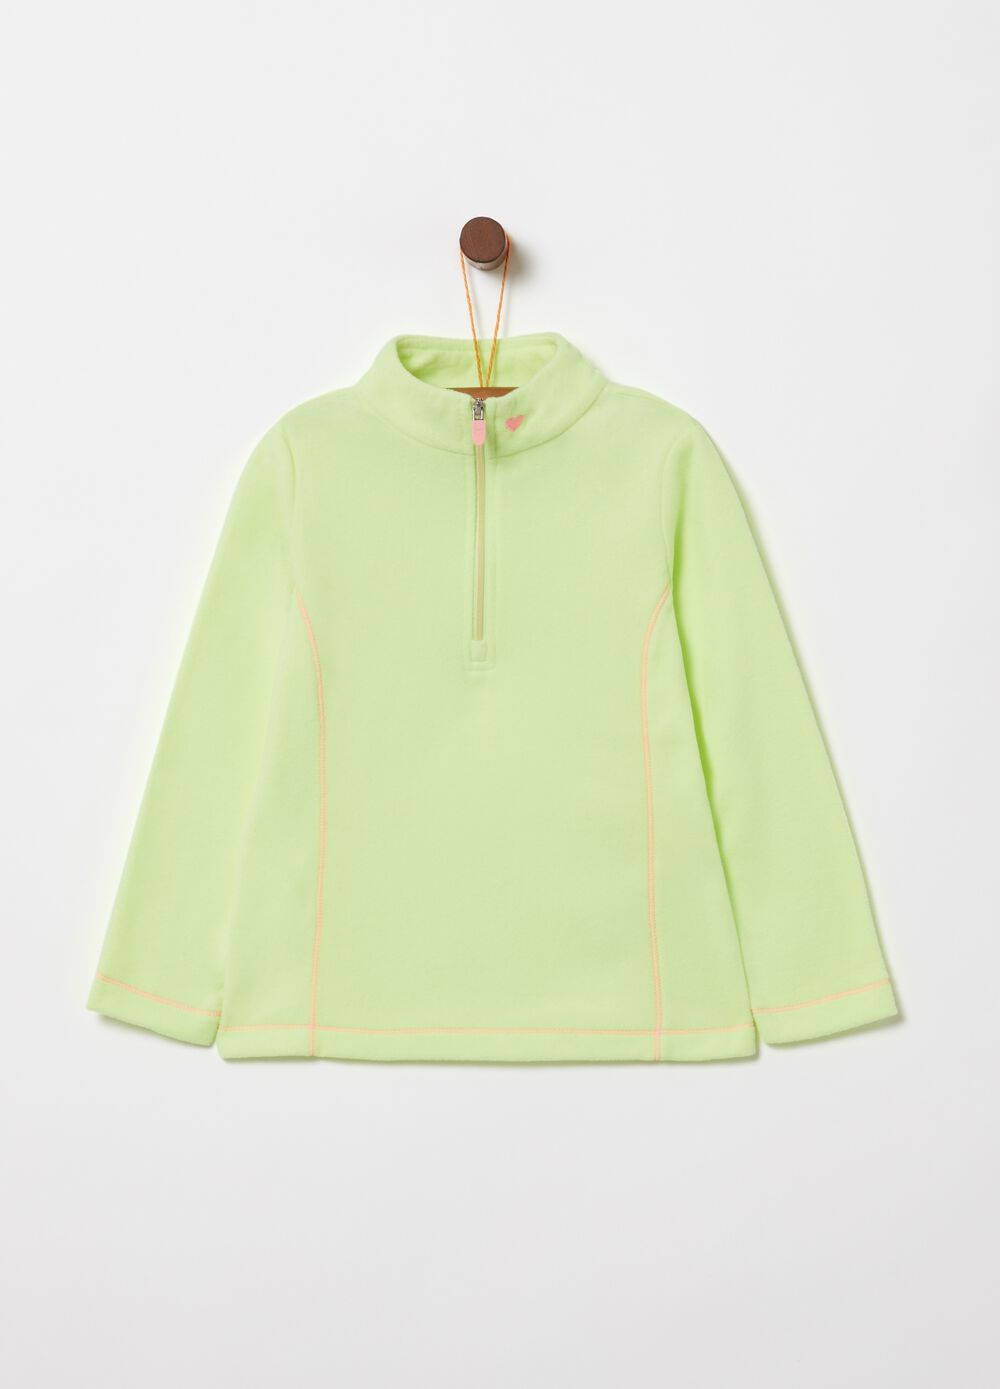 Sustainable fleece sweatshirt with high neck and zip